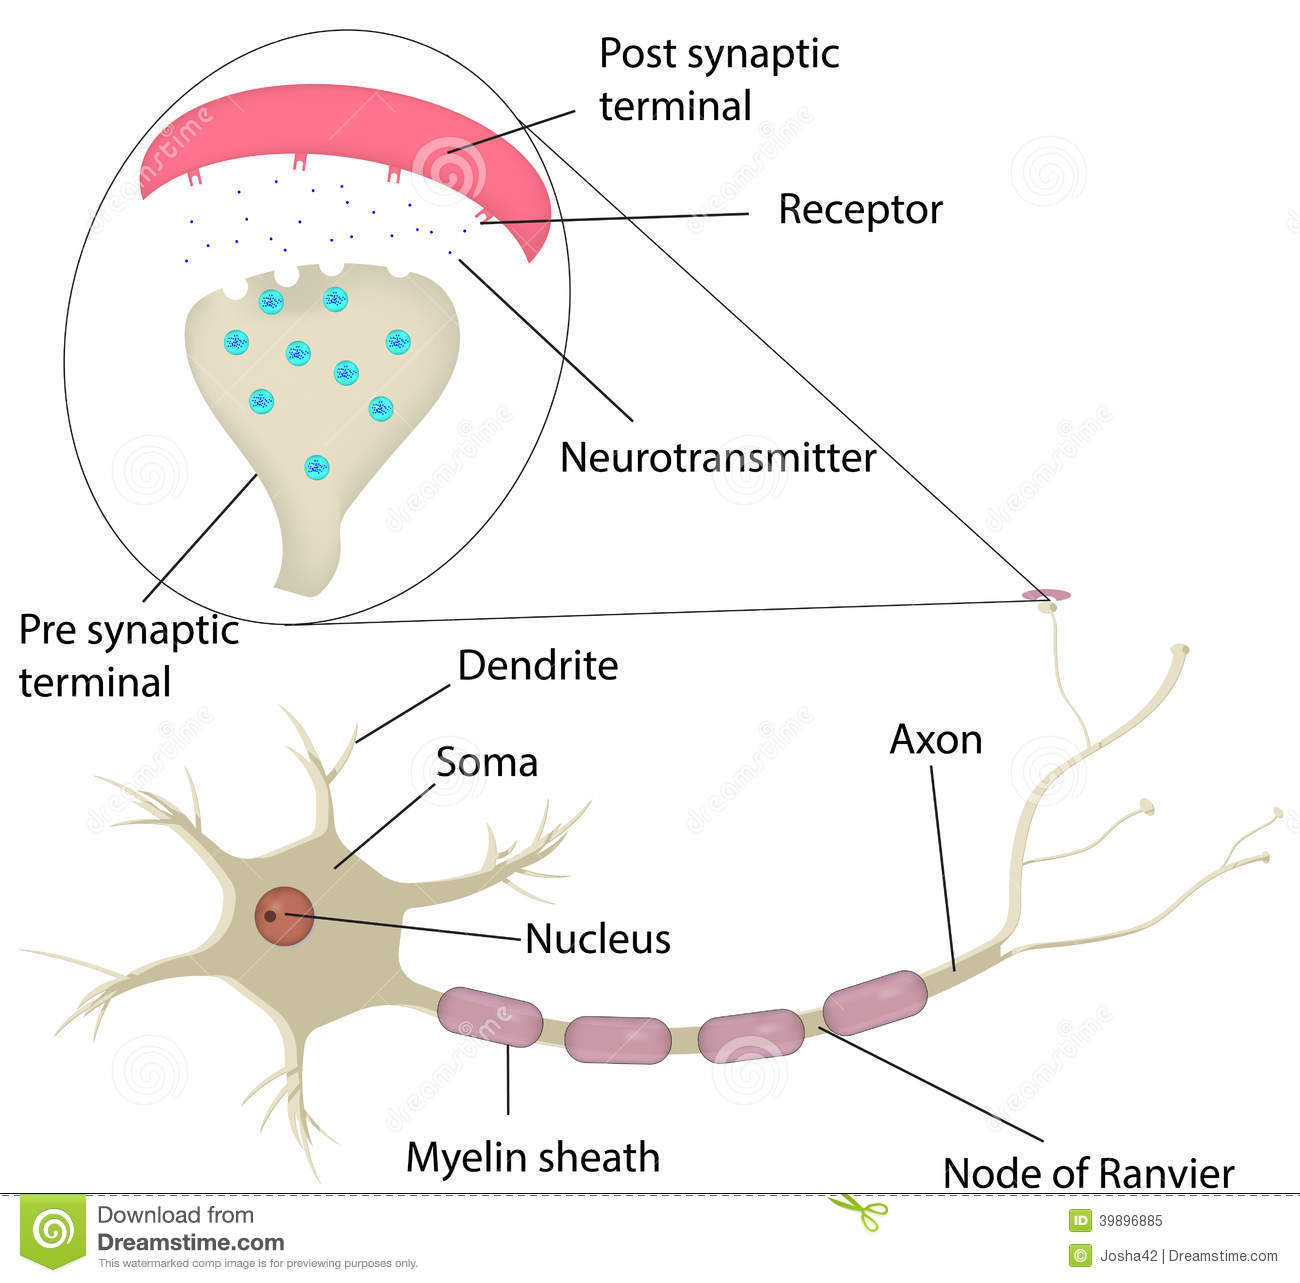 neuron and synapse labeled diagram stock vector - illustration of